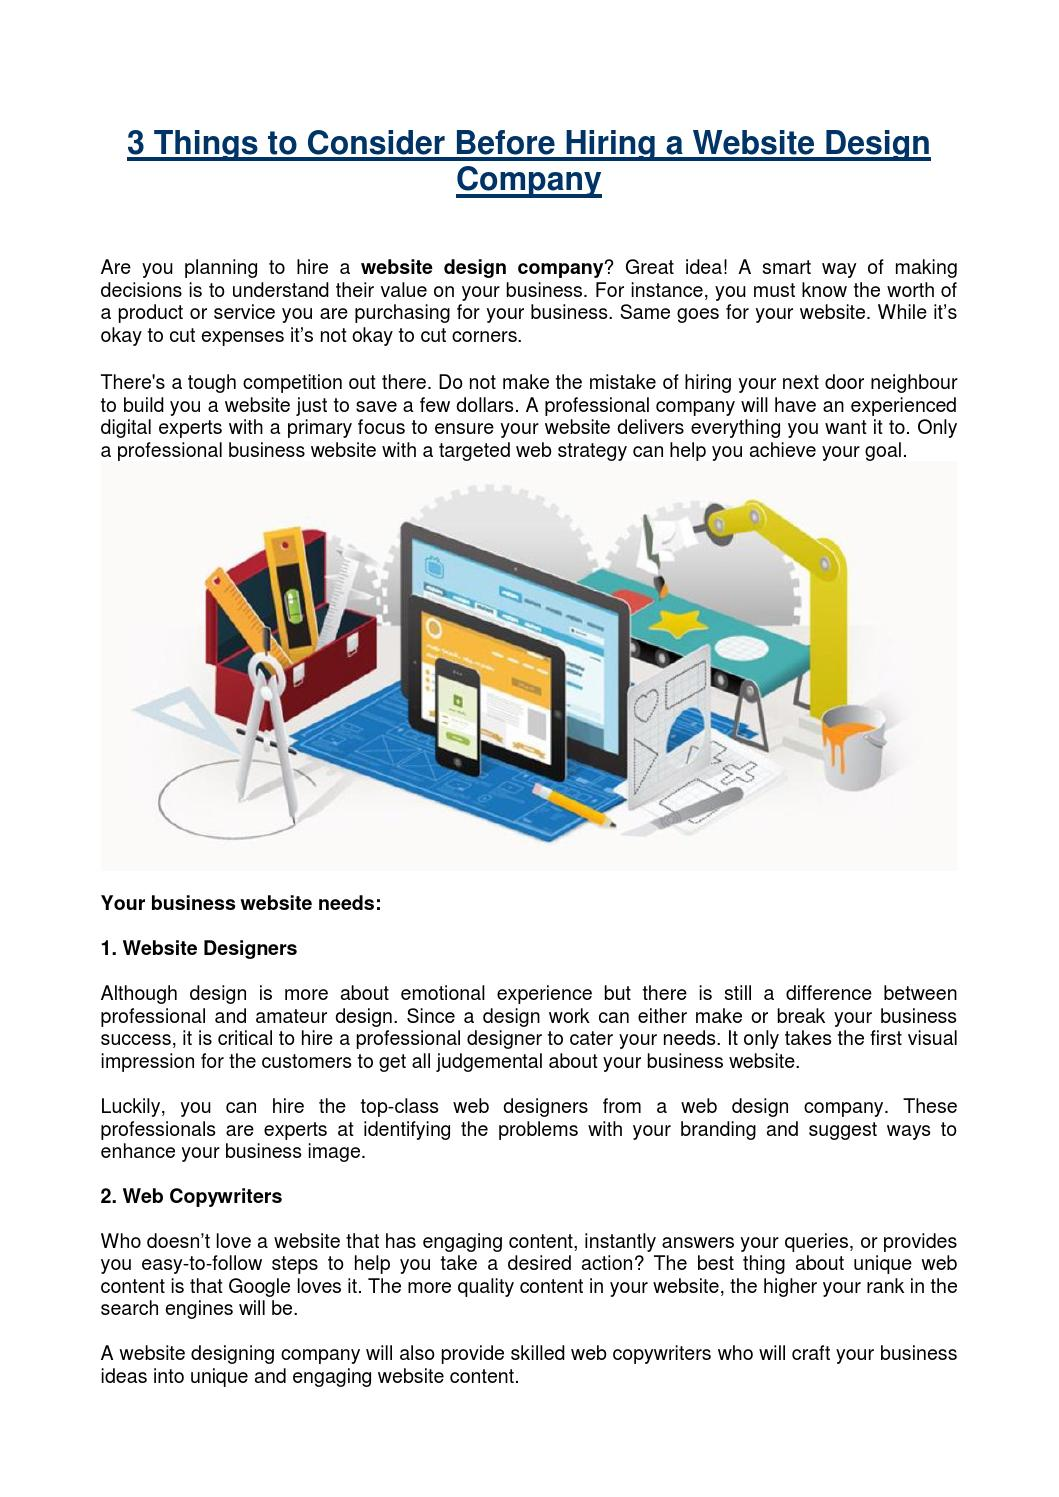 3 Things To Consider Before Hiring A Website Design Company By Web Design Vaughan Issuu